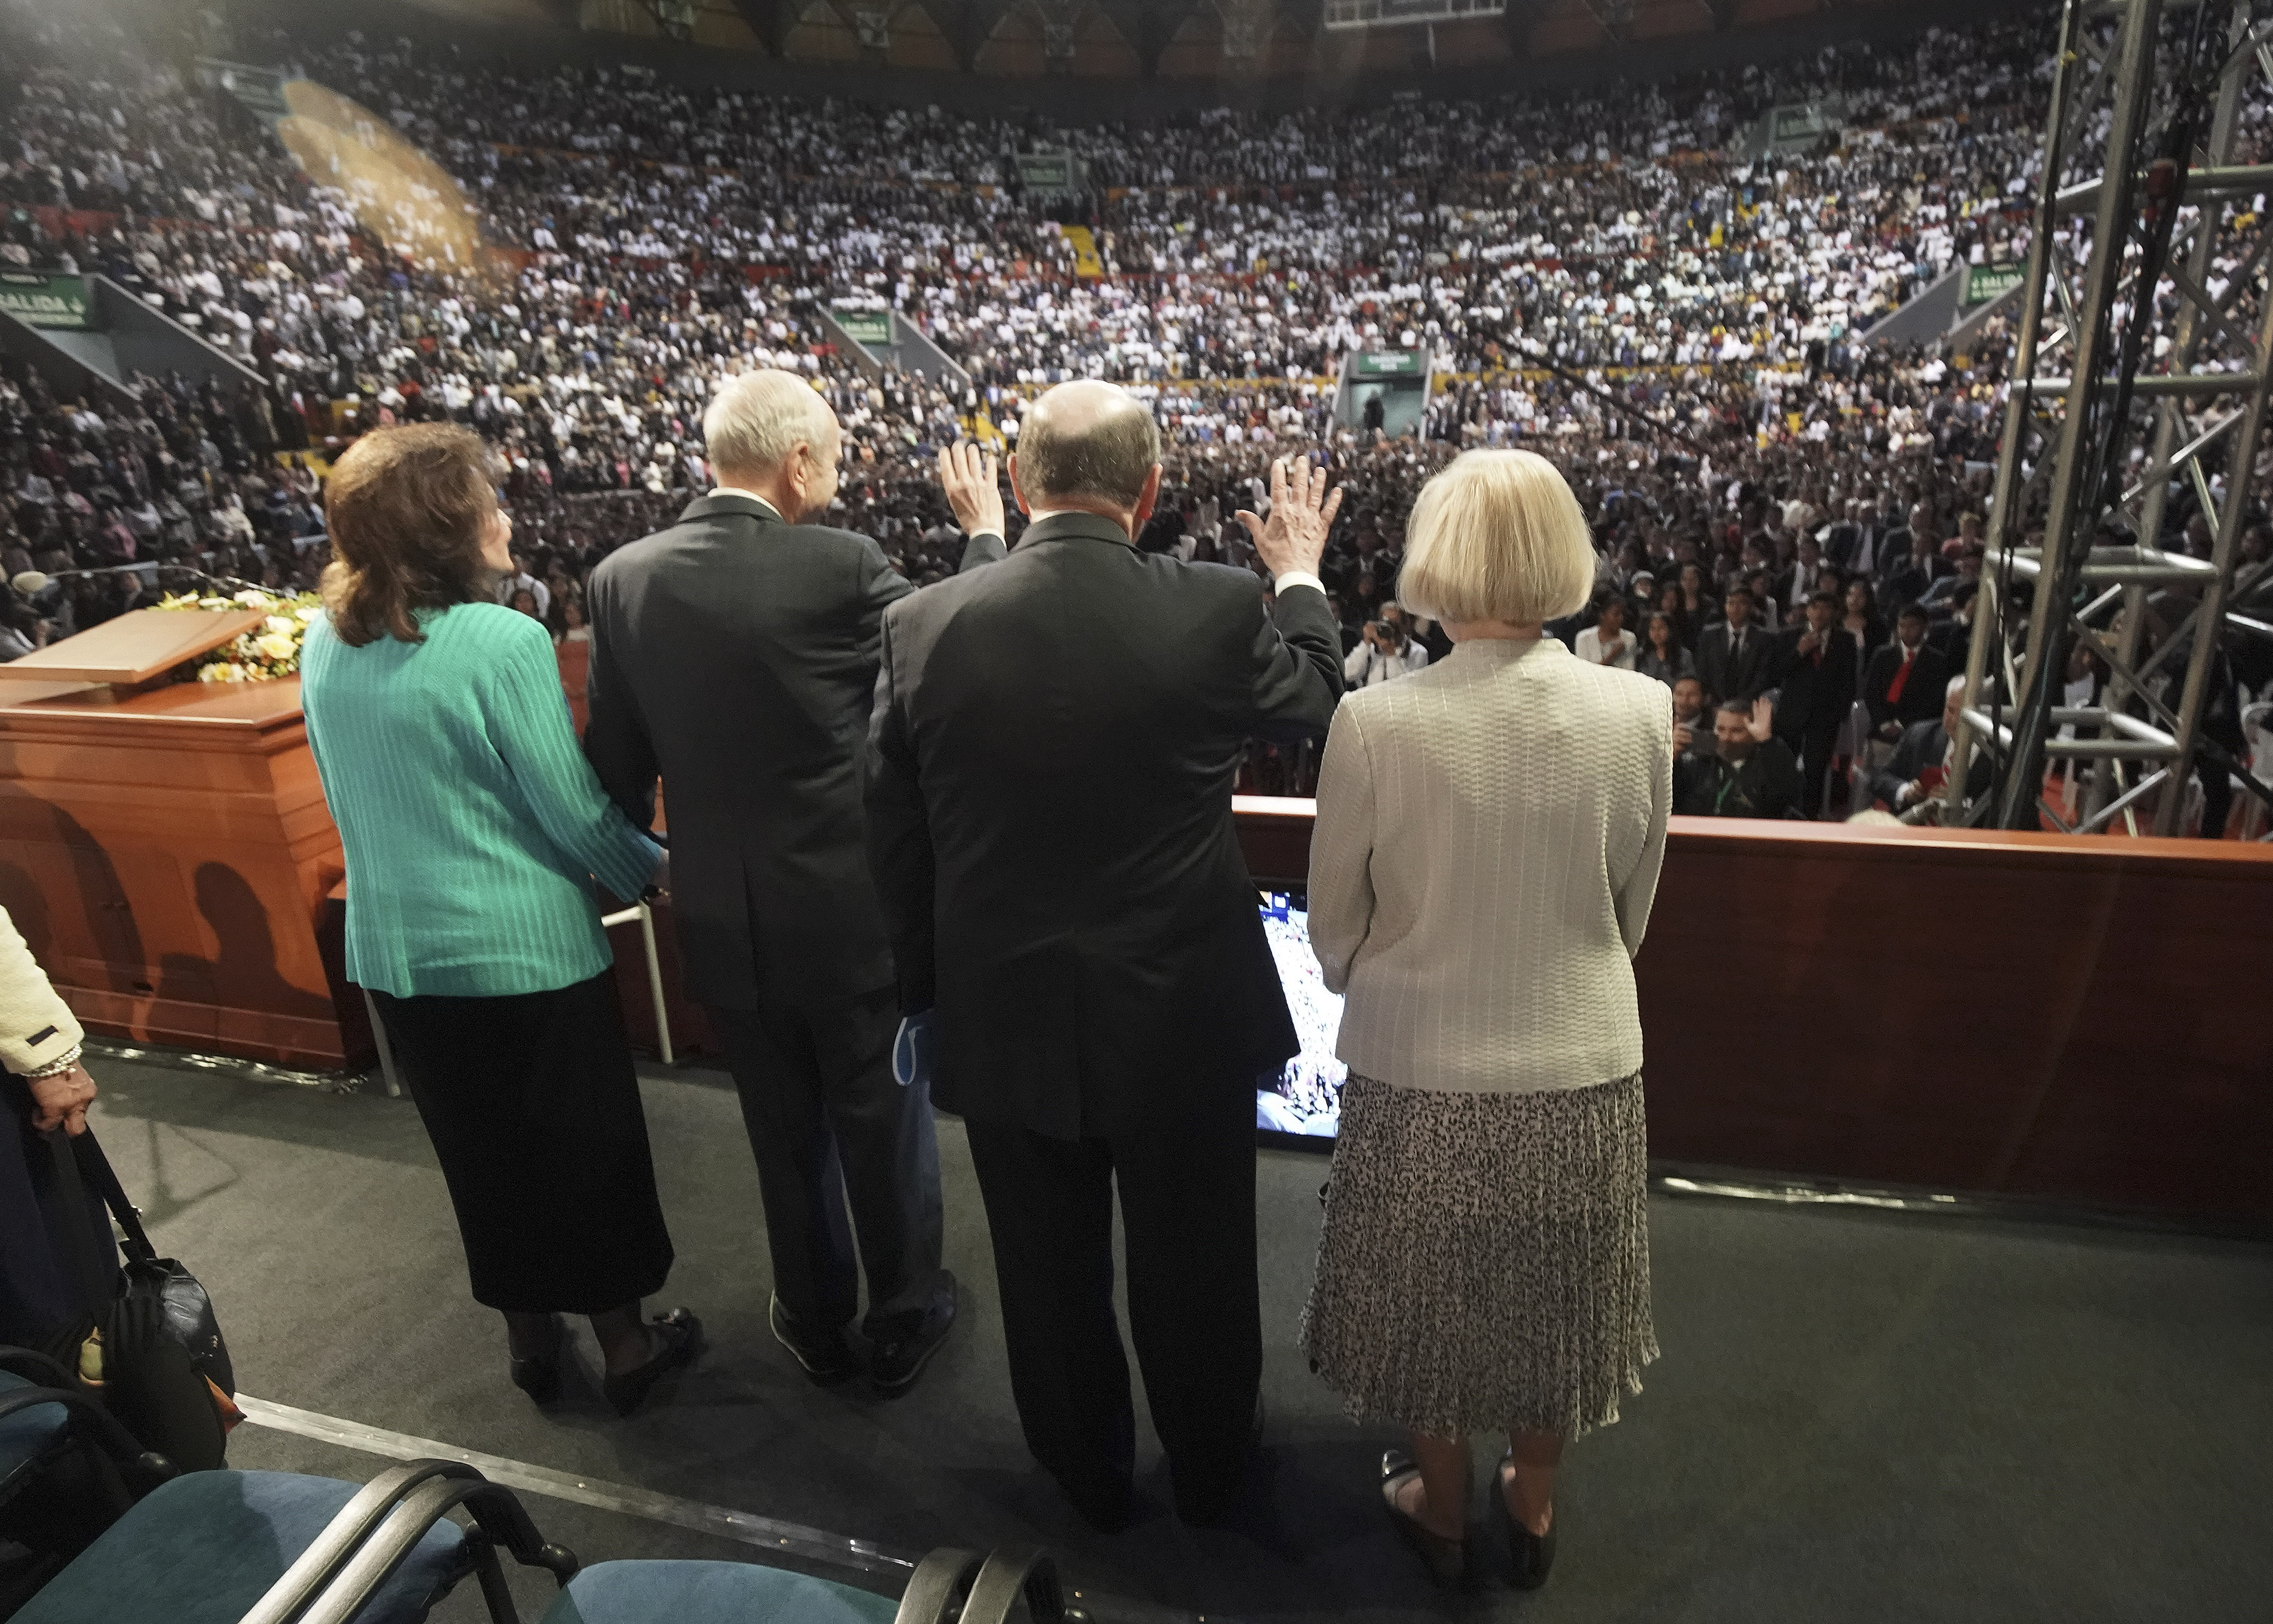 President Russell M. Nelson of The Church of Jesus Christ of Latter-day Saints and his wife, Sister Wendy Nelson, and Elder Quentin L. Cook of the Quorum of the Twelve Apostles and his wife, Sister Mary Cook, wave to attendees after a devotional in Quito, Ecuador, on Monday, Aug. 26, 2019.